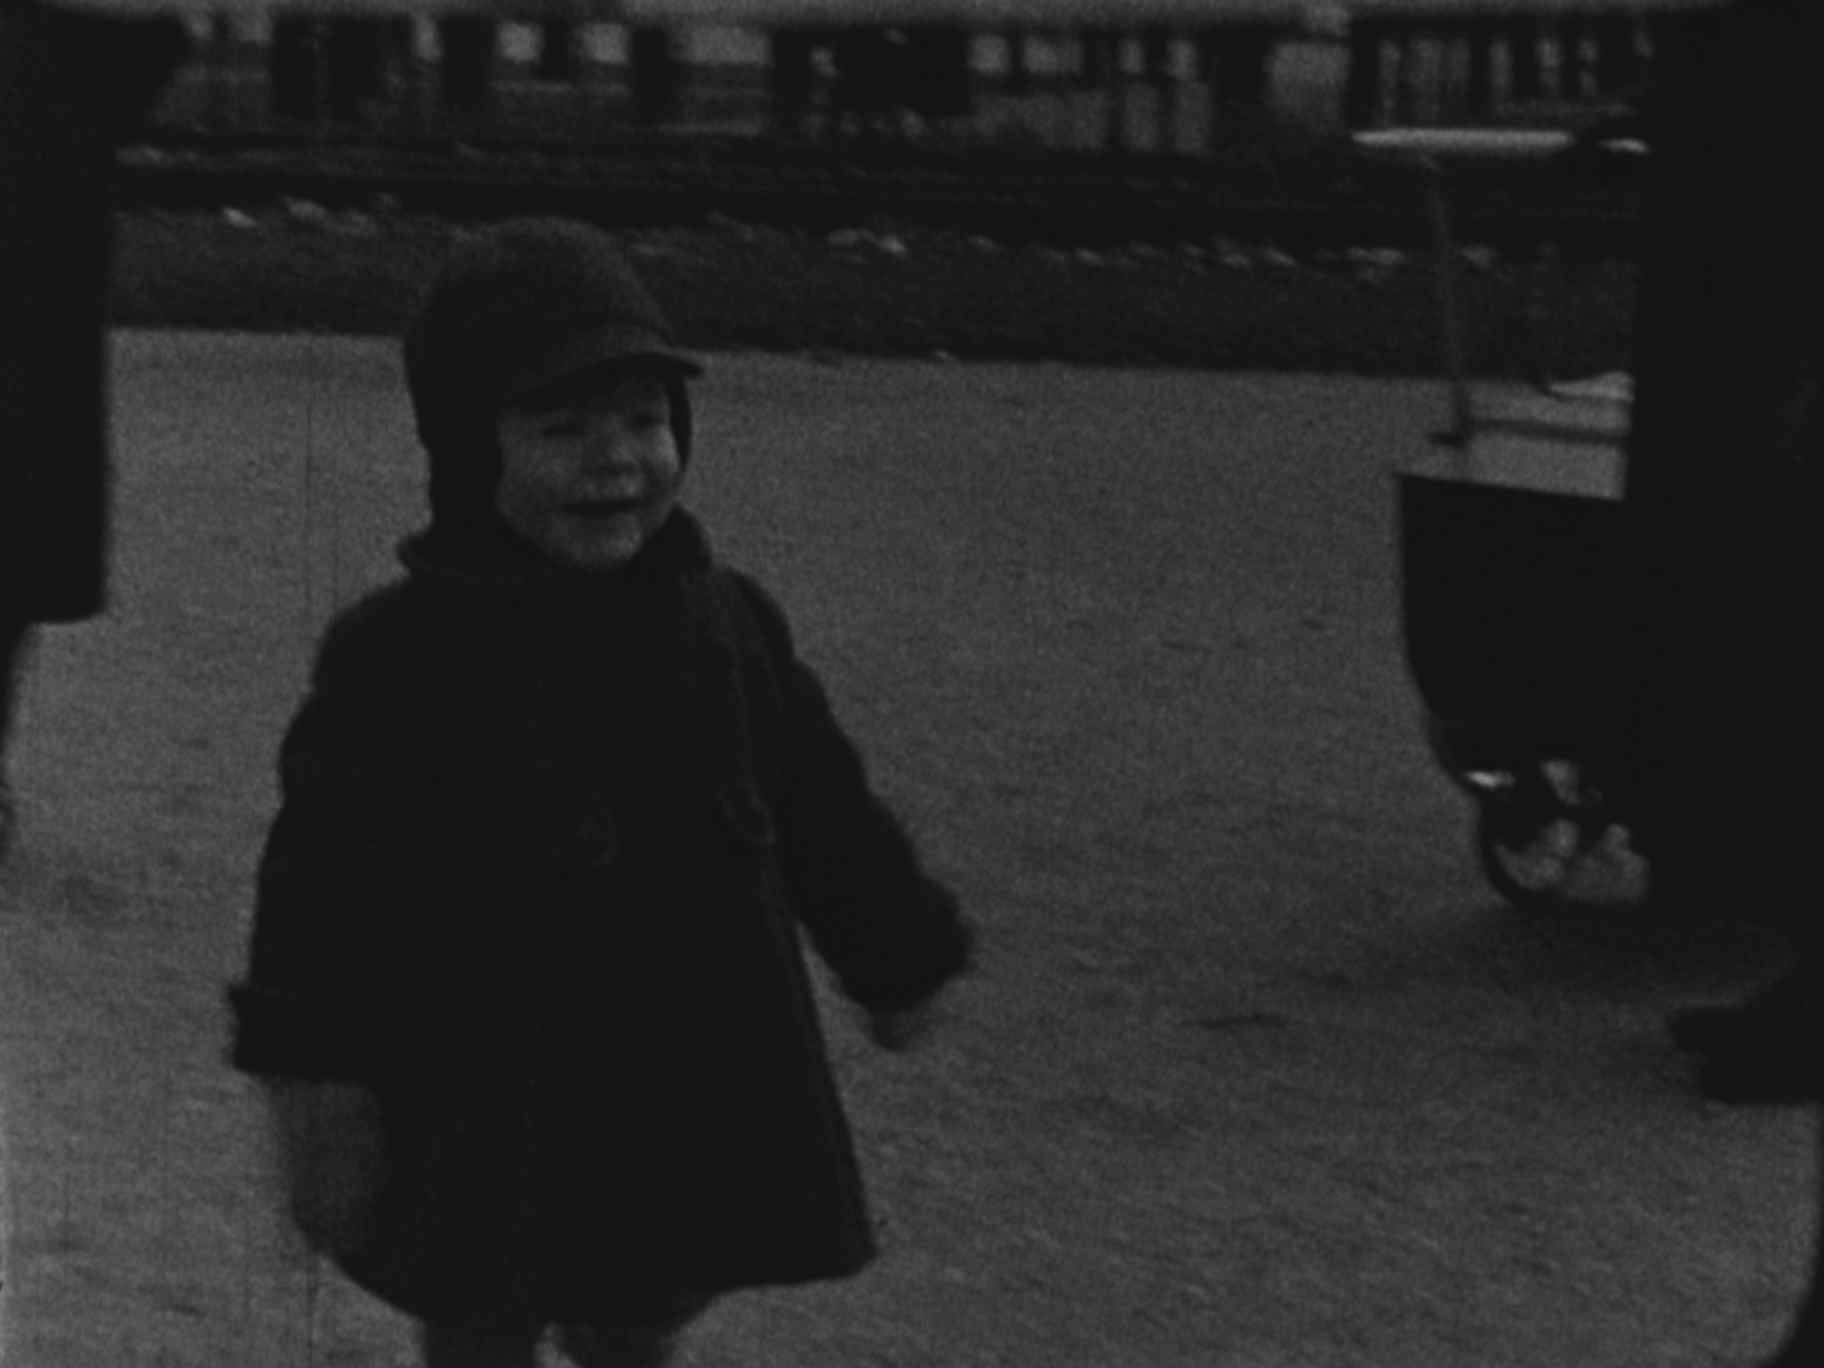 Marcus Tennenbaum: Home movies, Vienna, 1937-1939